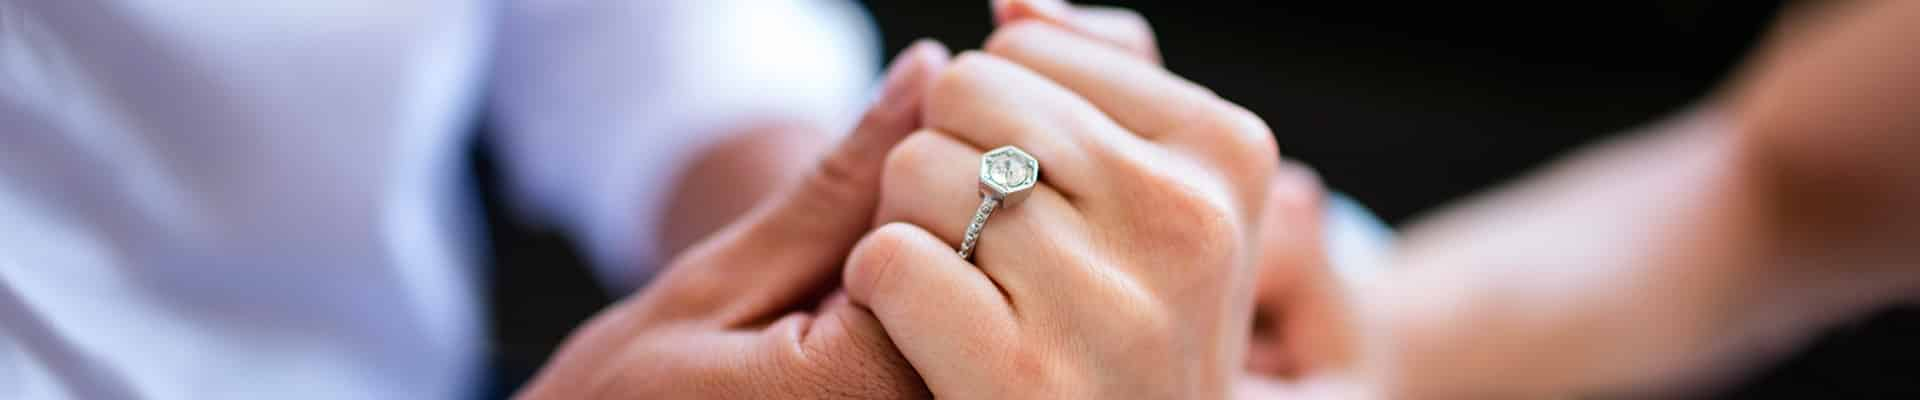 Couples hands embracing with ring